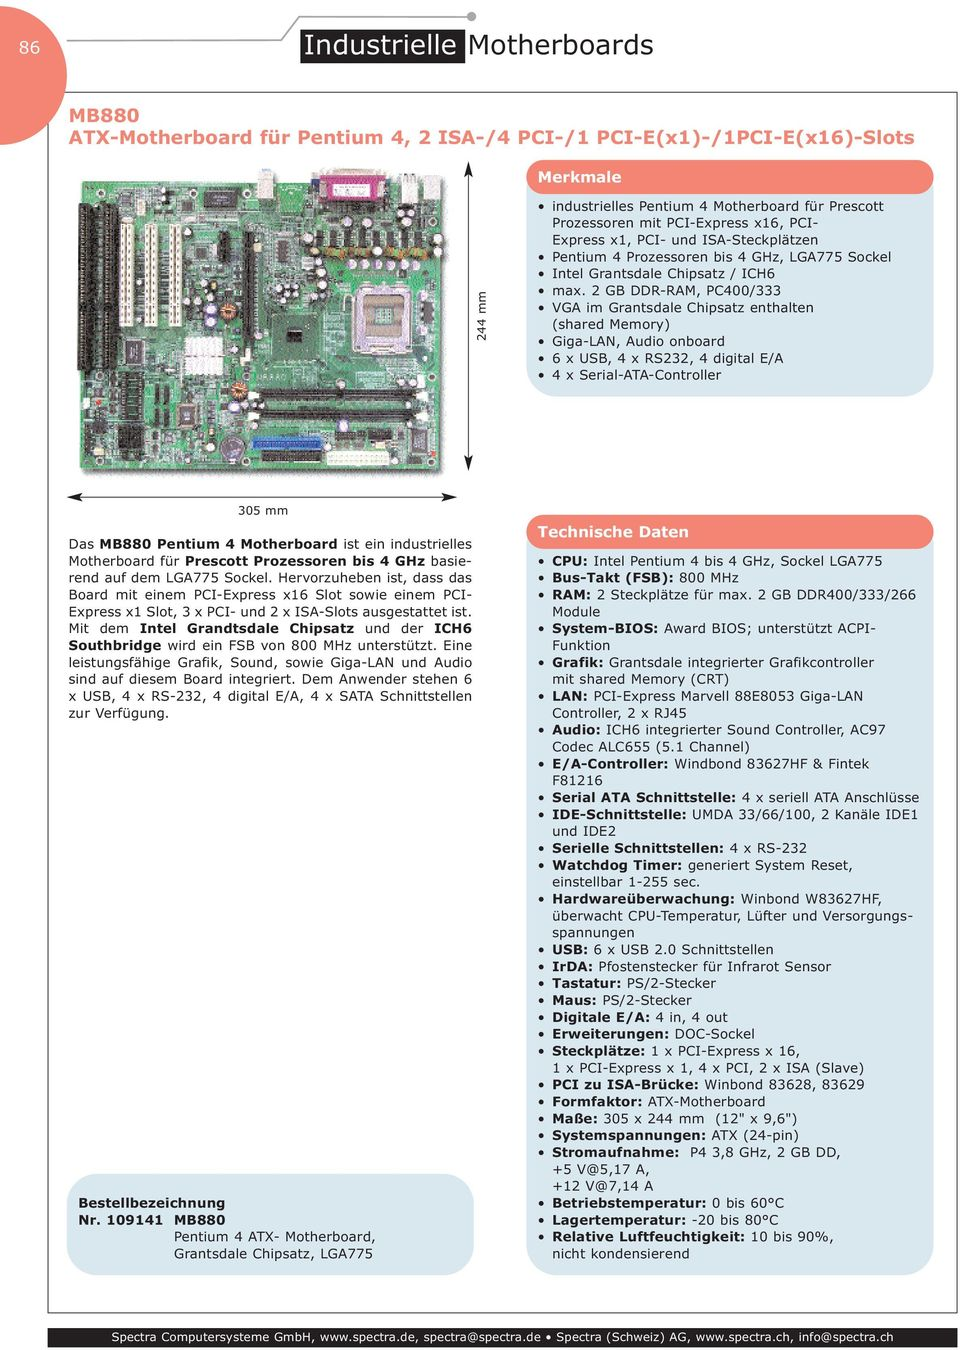 2 GB DDR-RAM, PC400/333 VGA im Grantsdale Chipsatz enthalten (shared Memory) Giga-LAN, Audio onboard 6 x USB, 4 x RS232, 4 digital E/A 4 x Serial-ATA-Controller 305 mm Das MB880 Pentium 4 Motherboard